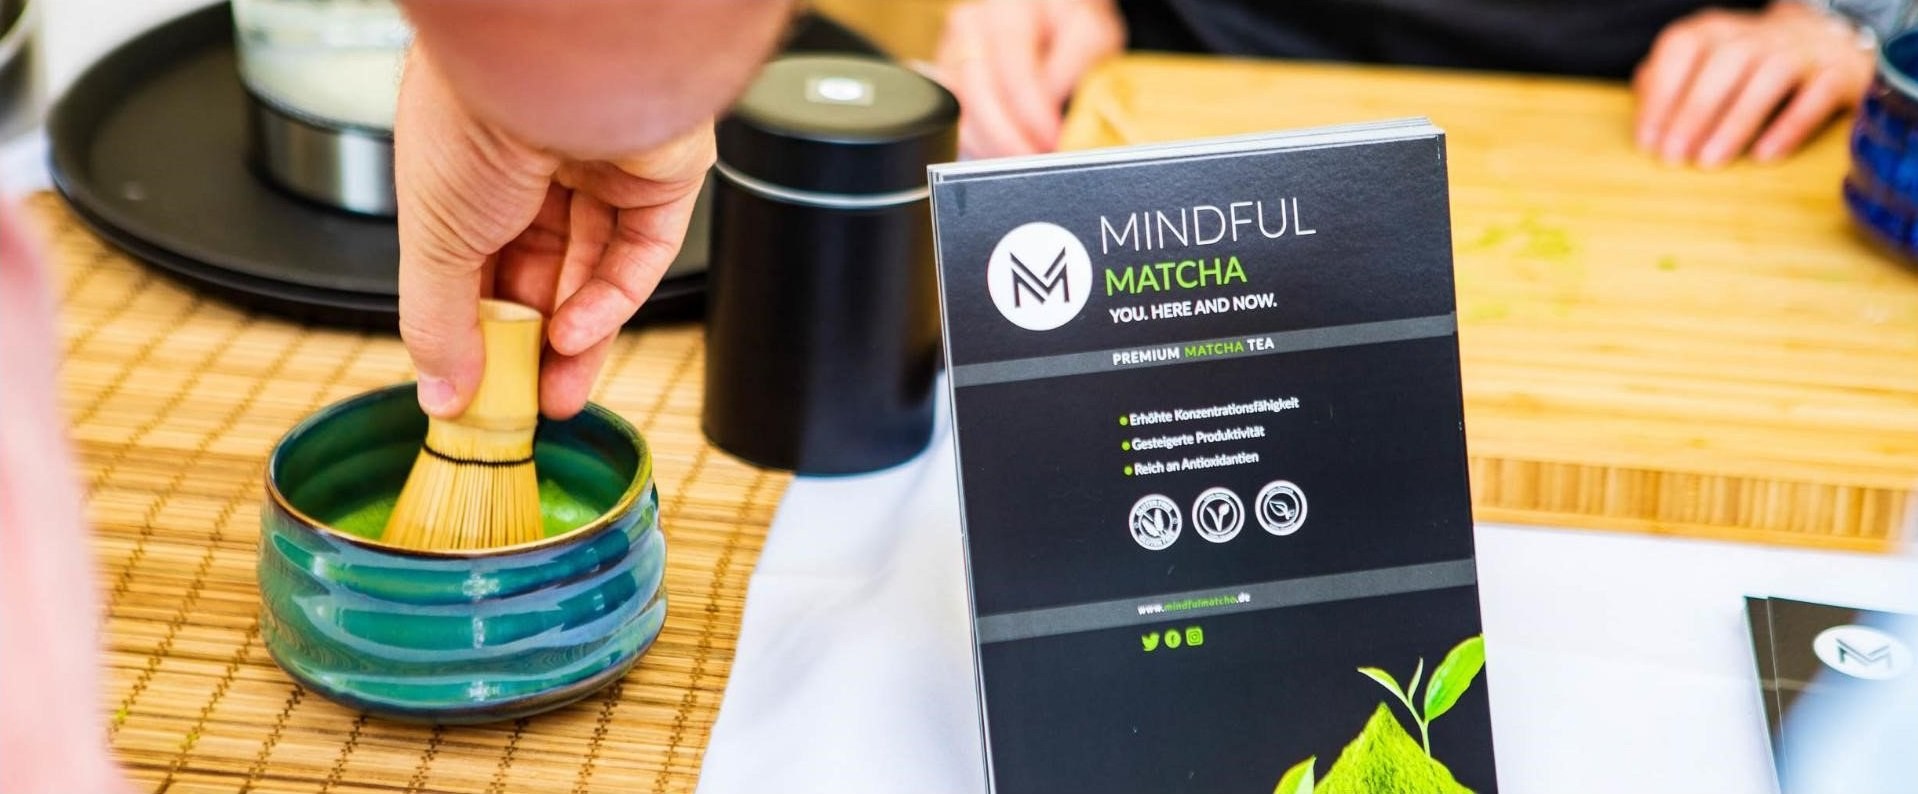 Gourmet Festival am Stand - © Mindful Matcha